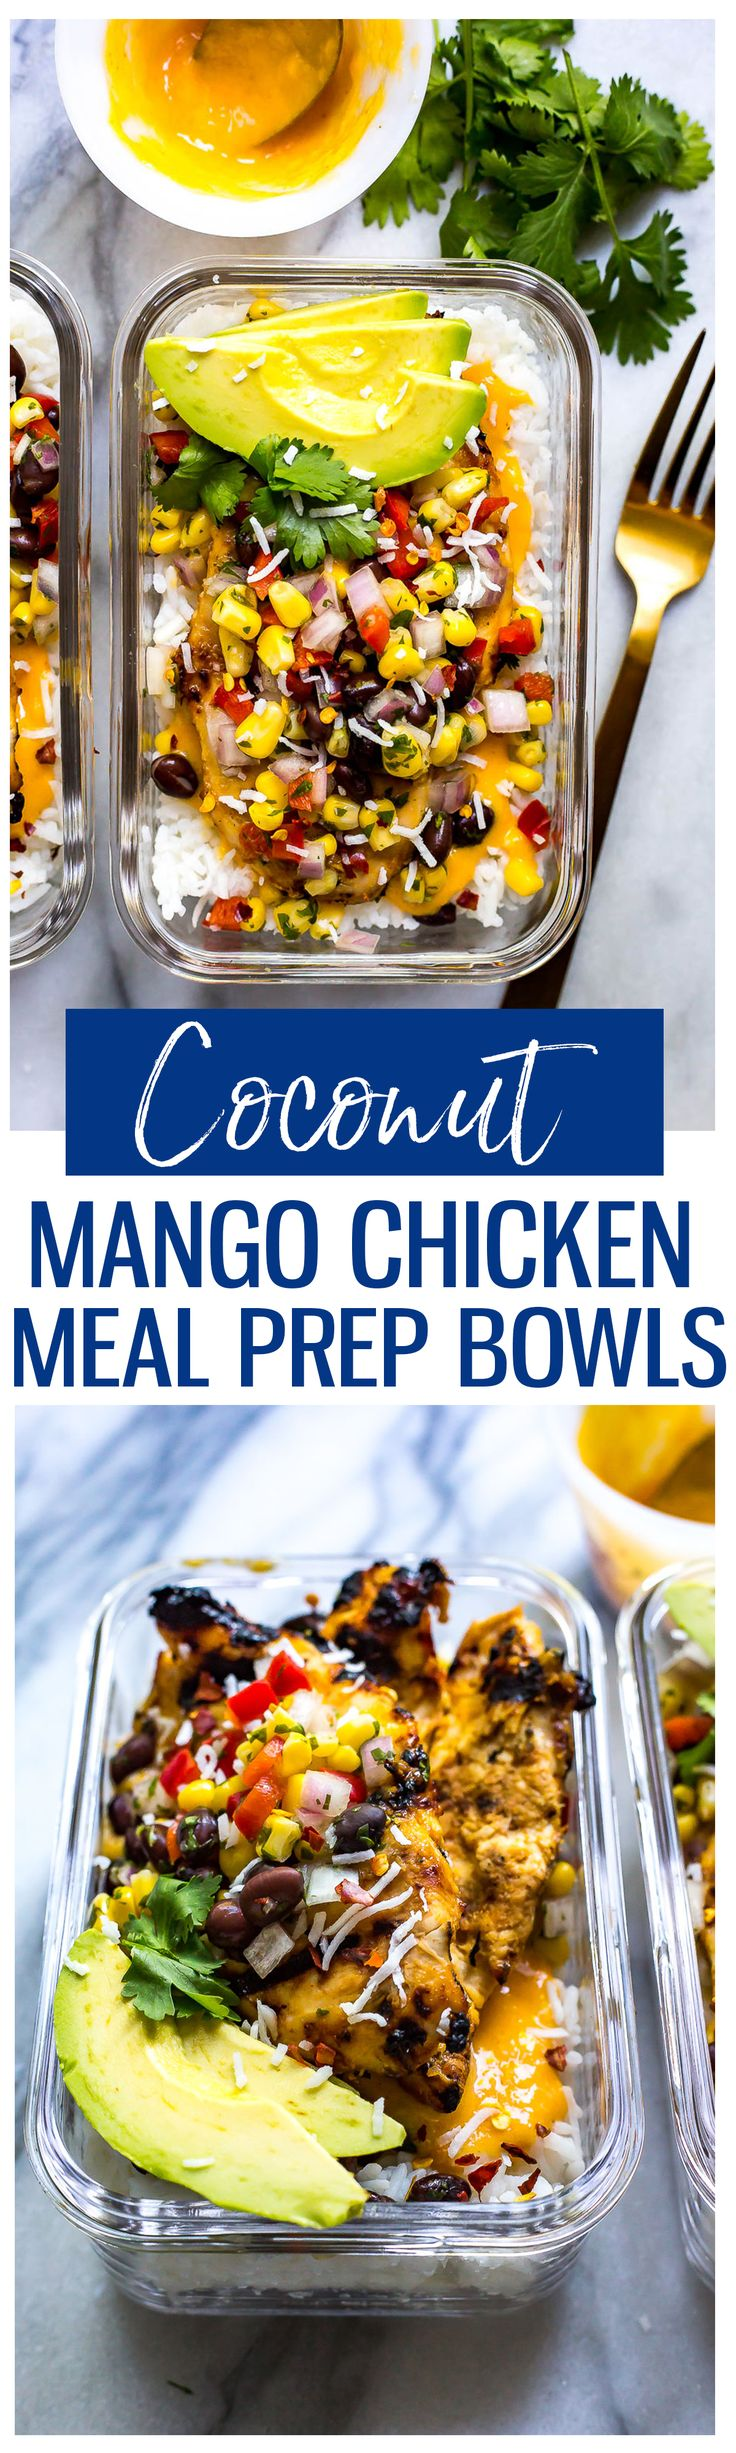 These Coconut Mango Chicken Meal Prep Bowls with basmati rice, corn salsa and an easy mango marinade are a delicious way to prep your lunches for the week!